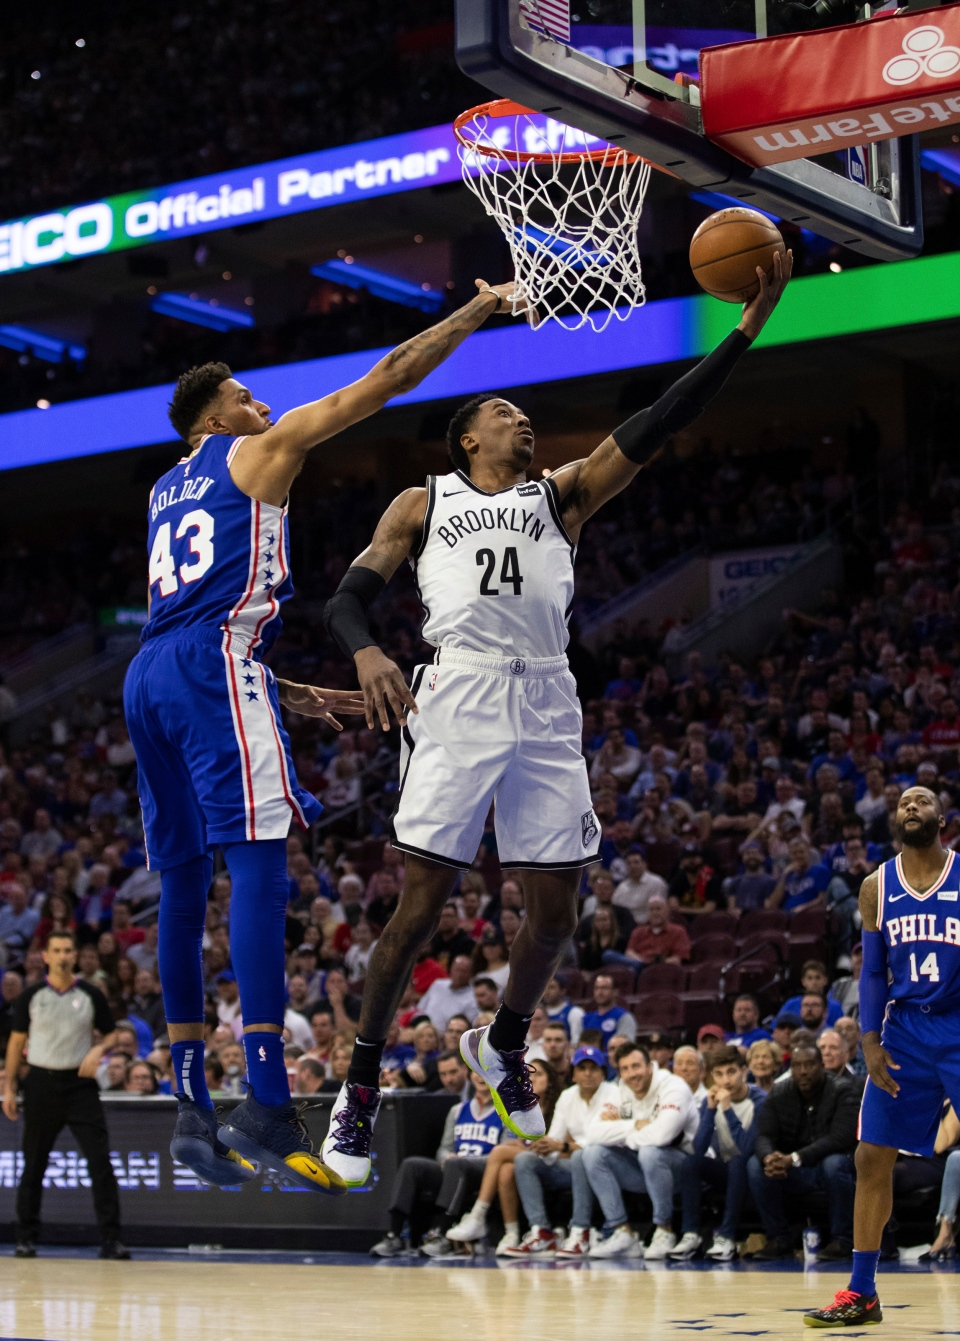 Brooklyn Nets' Rondae Hollis-Jefferson (24) goes up for the shot against Philadelphia 76ers' Jonah Boldens, left, of Australia, during the second half in Game 5 of a first-round NBA basketball playoff series, Tuesday, April 23, 2019, in Philadelphia. The 76ers won 122-100. (AP Photo/Chris Szagola)